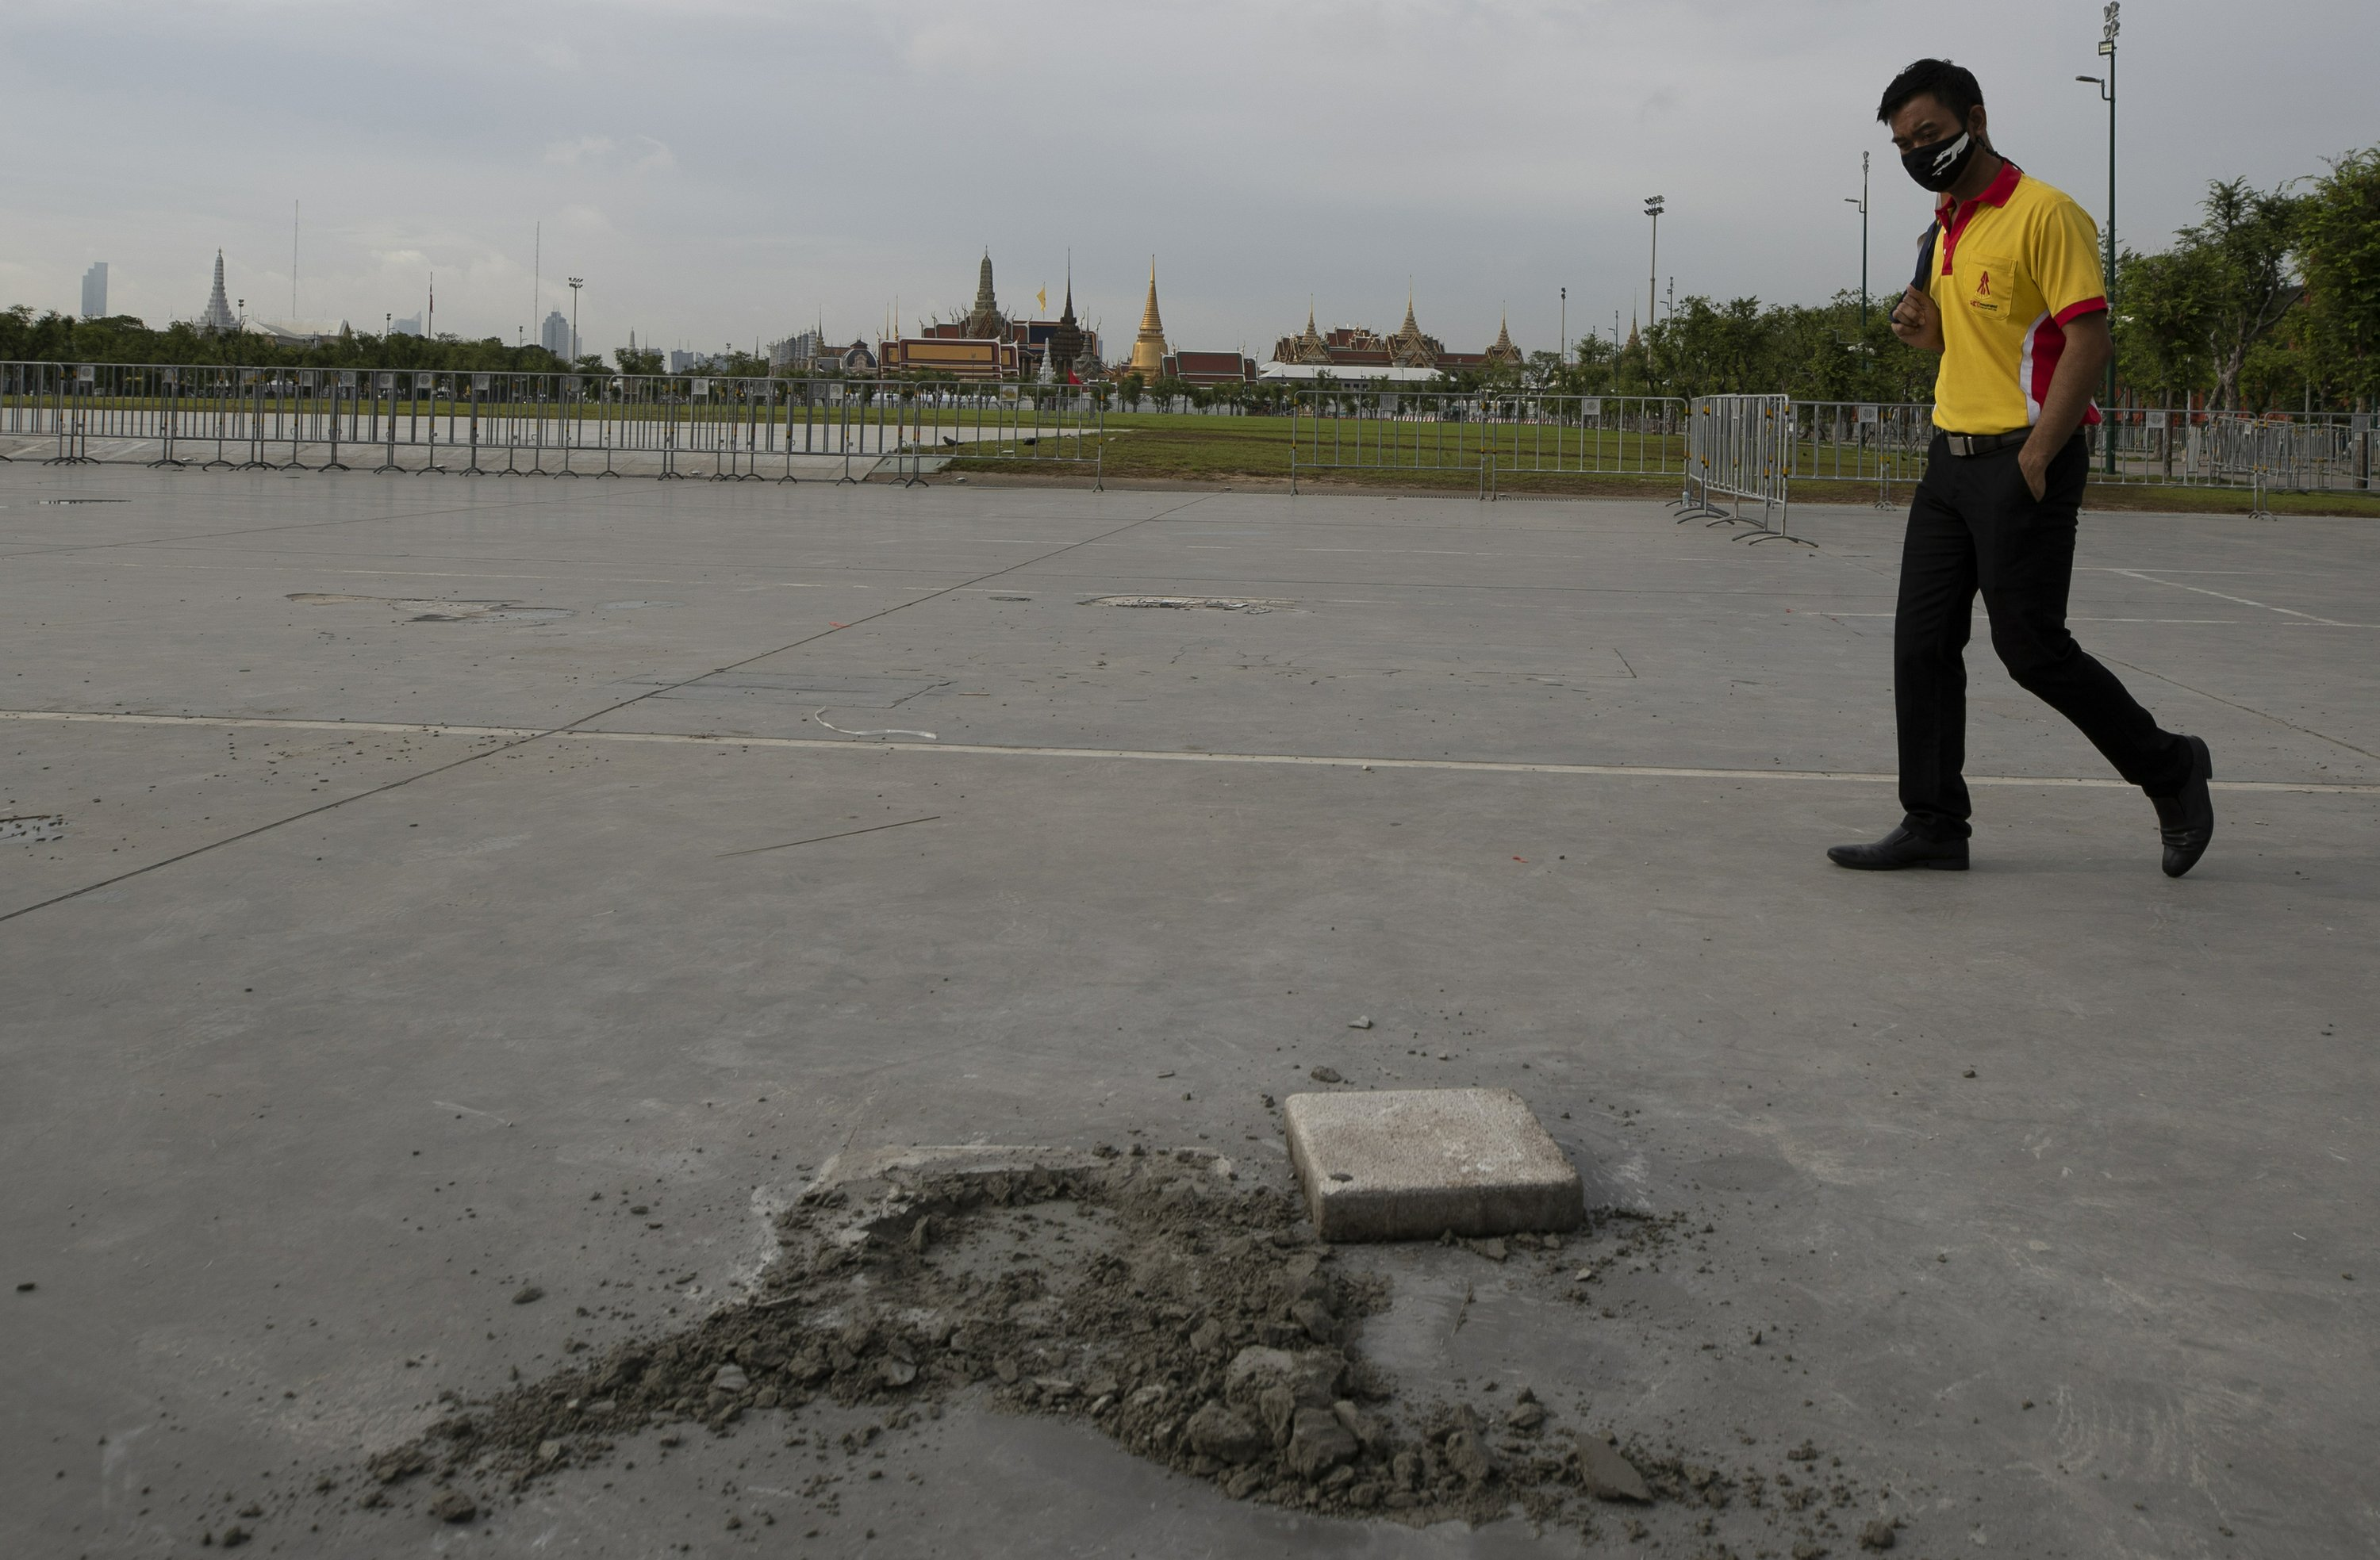 Plaque symbolizing Thai democracy removed in less than a day